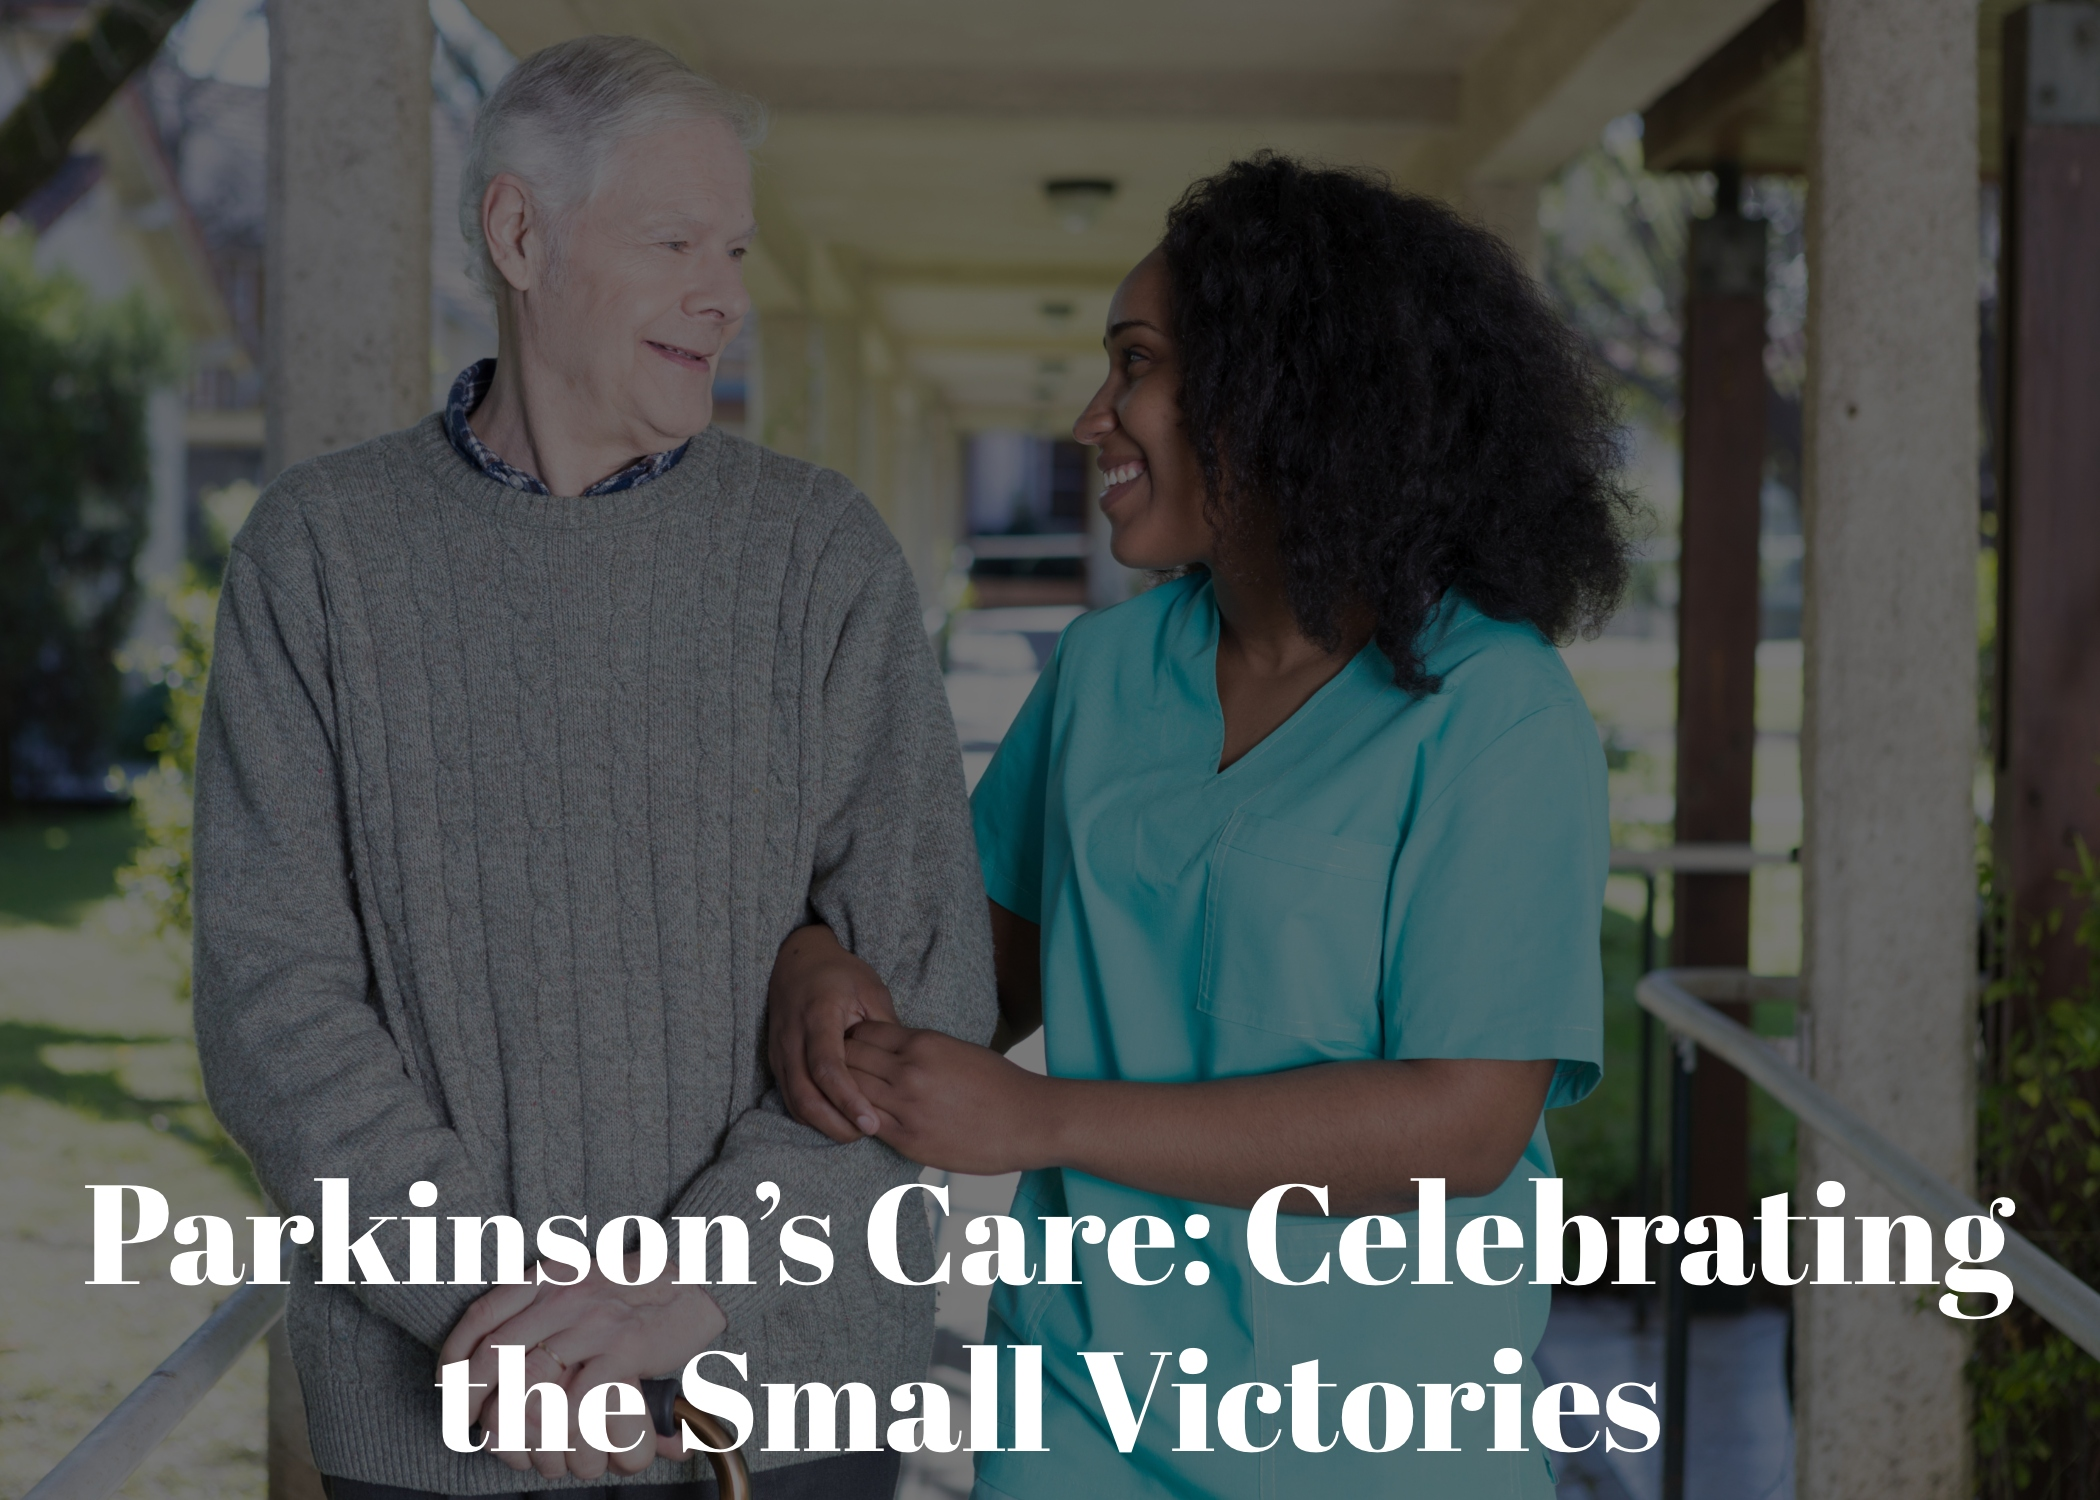 Parkinson's Care: Celebrating the Small Victories